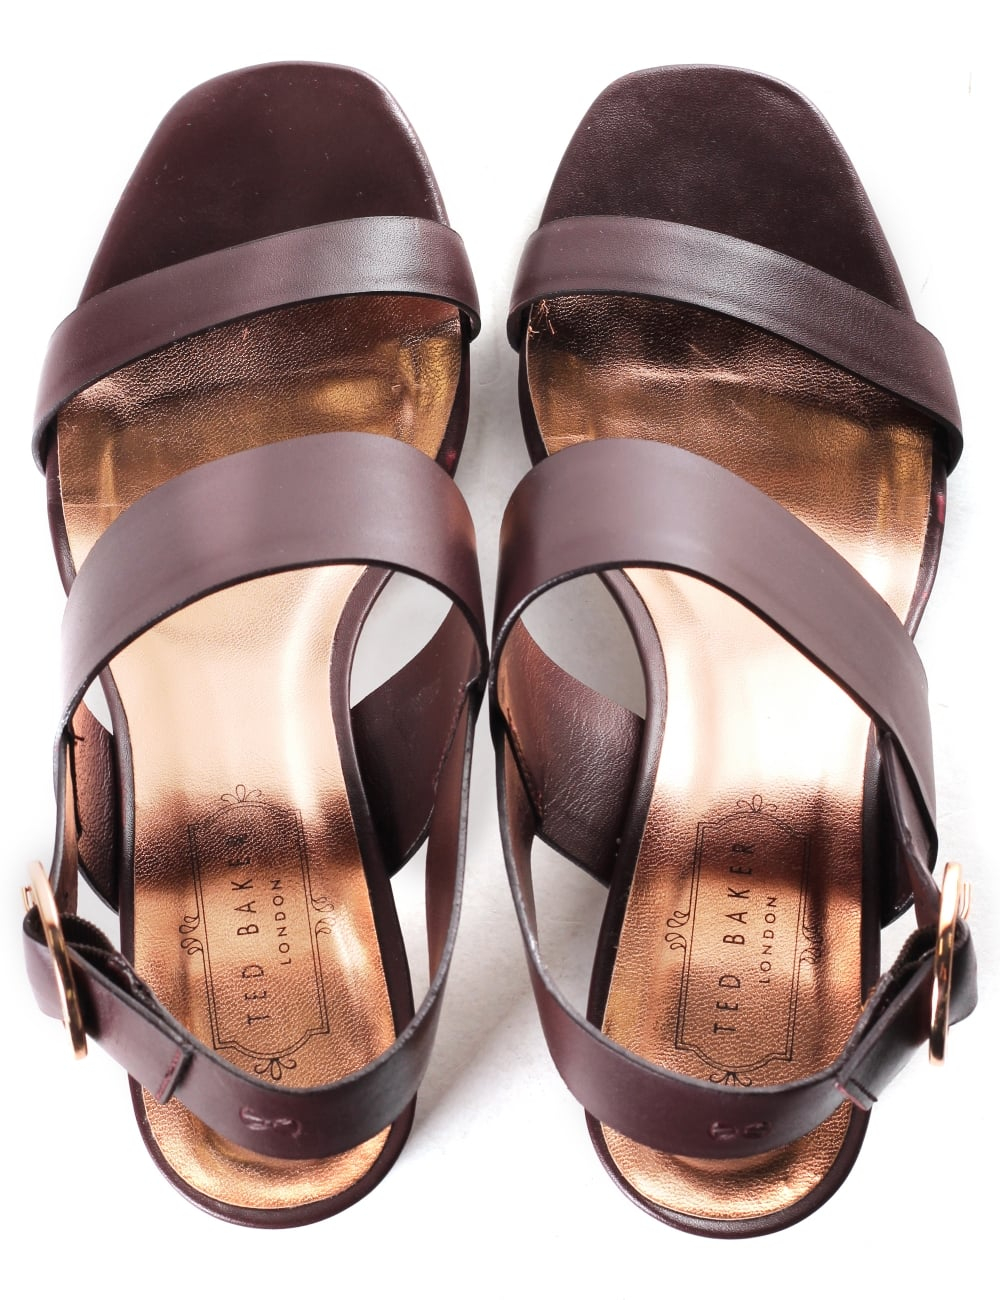 aad571e1f1303 Ted Baker Women s Azmara Ankle Strap Leather Sandal